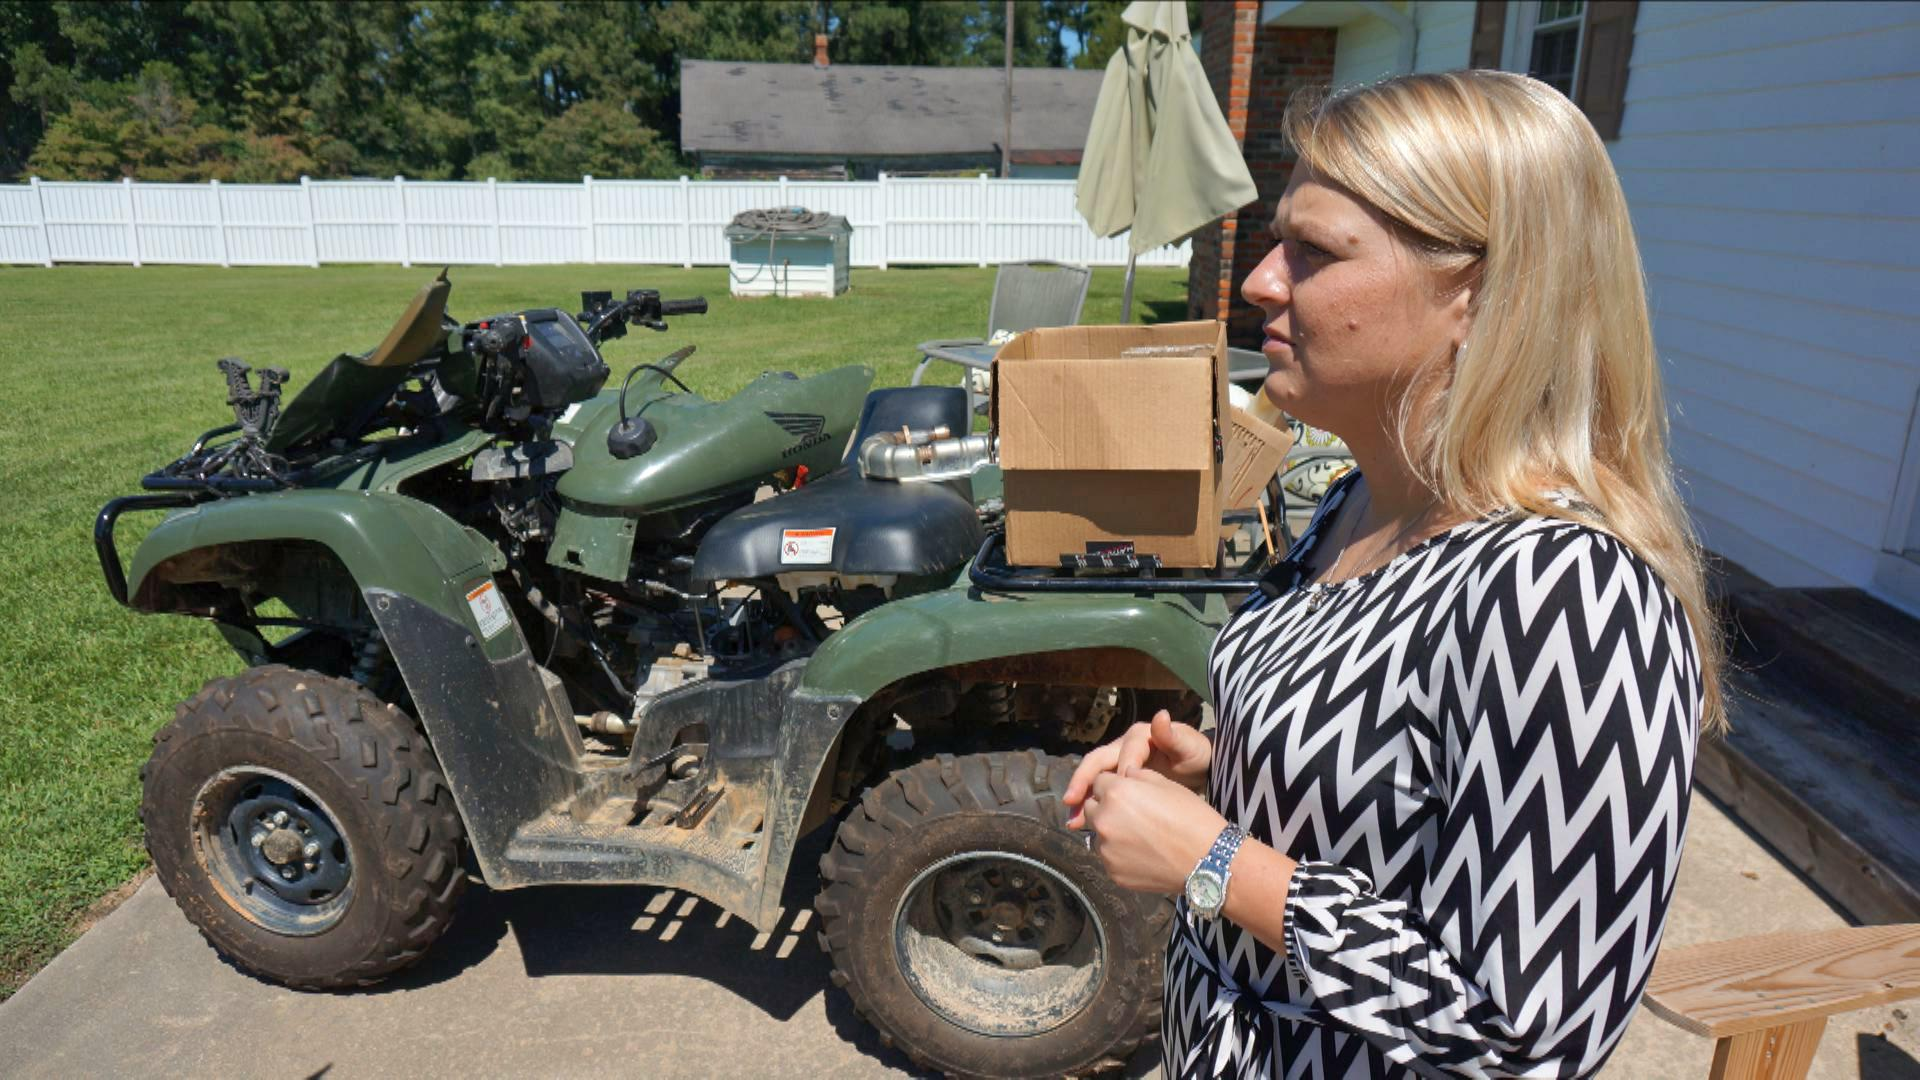 Rider dissatisfied with service from ATV Specialties :: WRAL com